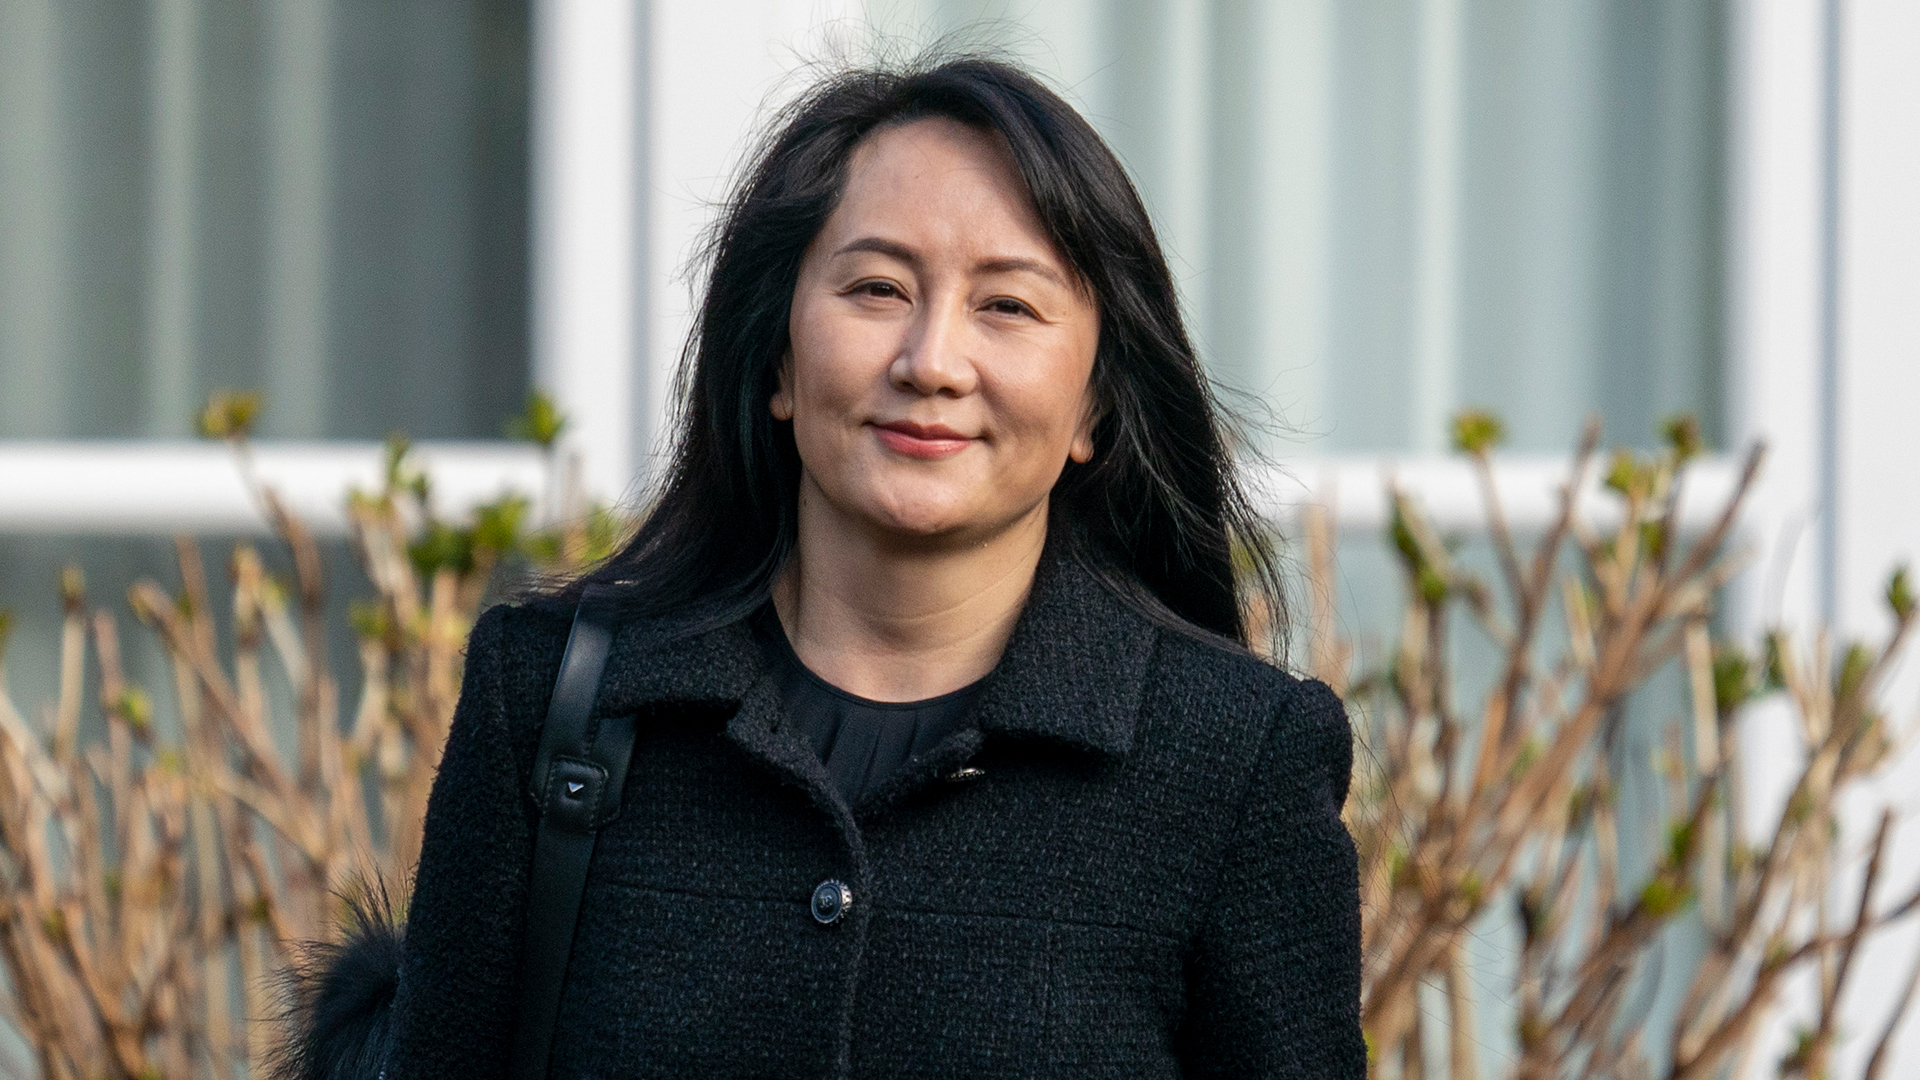 B.C. Supreme Court sets Meng Wanzhou's final court dates